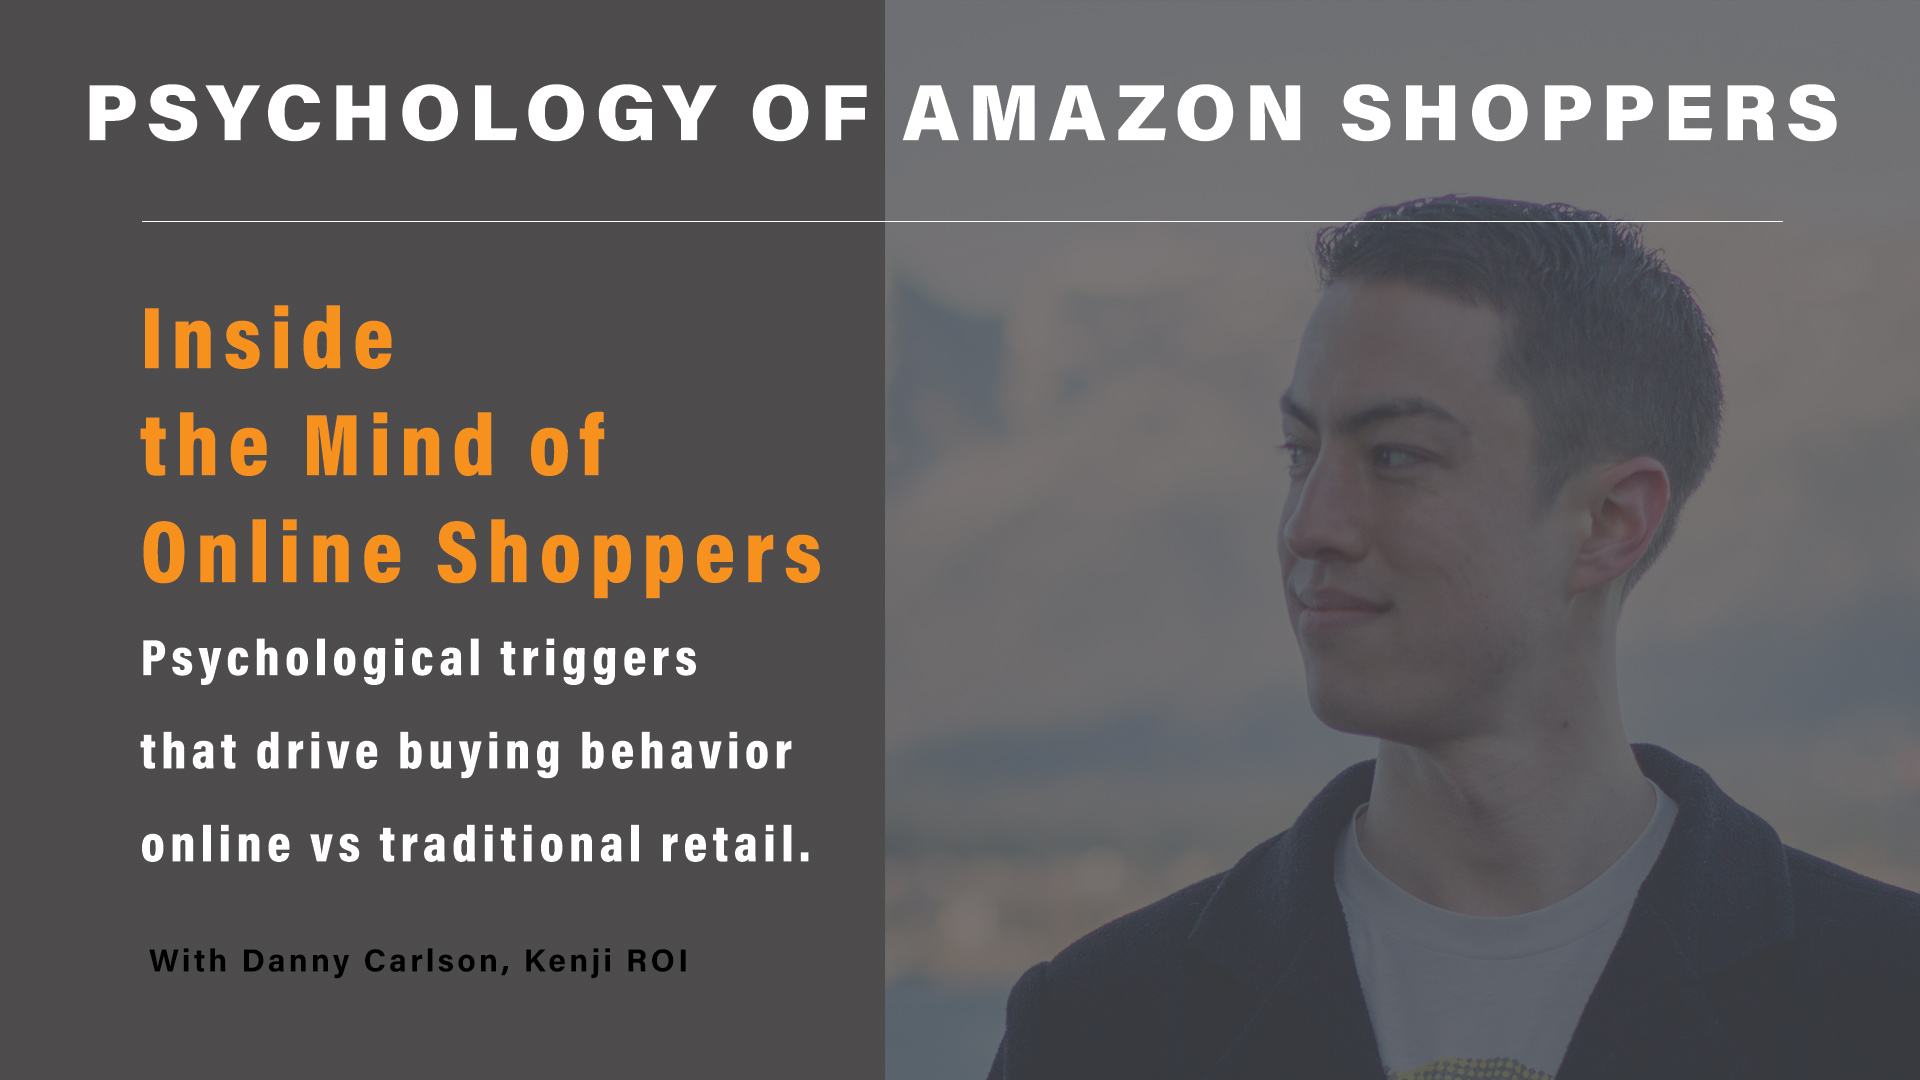 Psychology of Amazon Shoppers